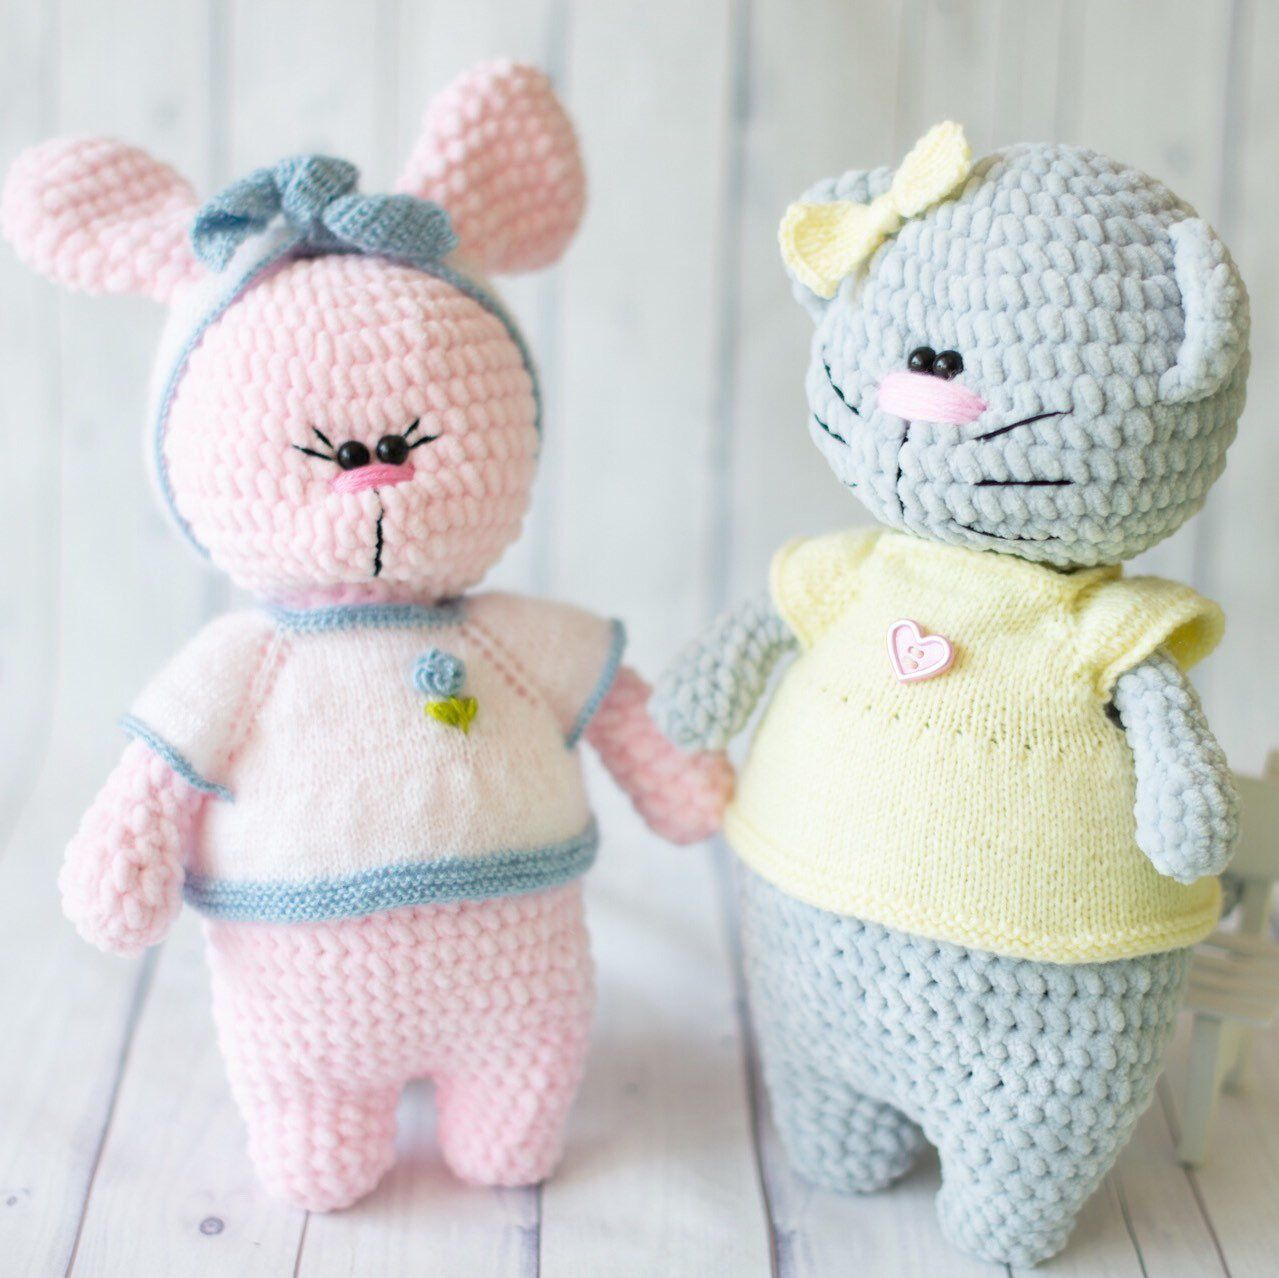 Cute toys images  AjanyShop shared a new photo on  ETSY  successful seller